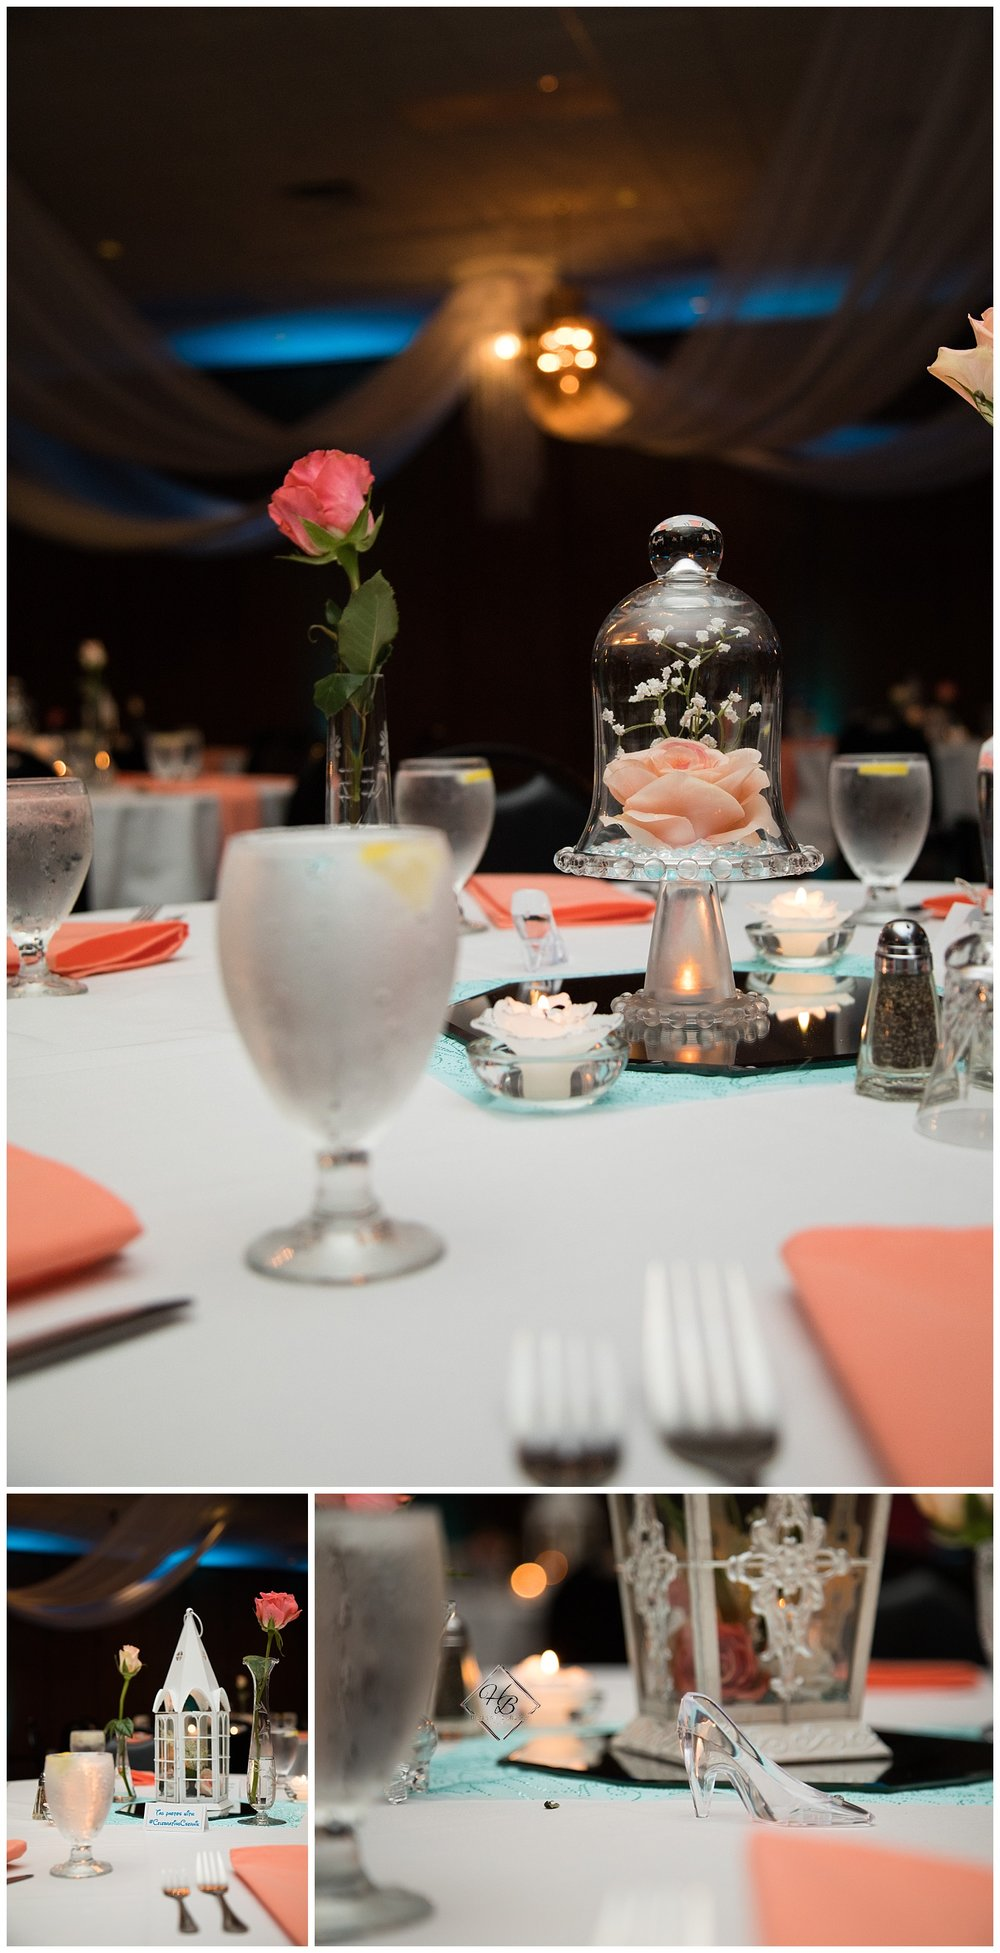 Youngstown, OH Fairytale Wedding Beauty and the Beast Theme Reception